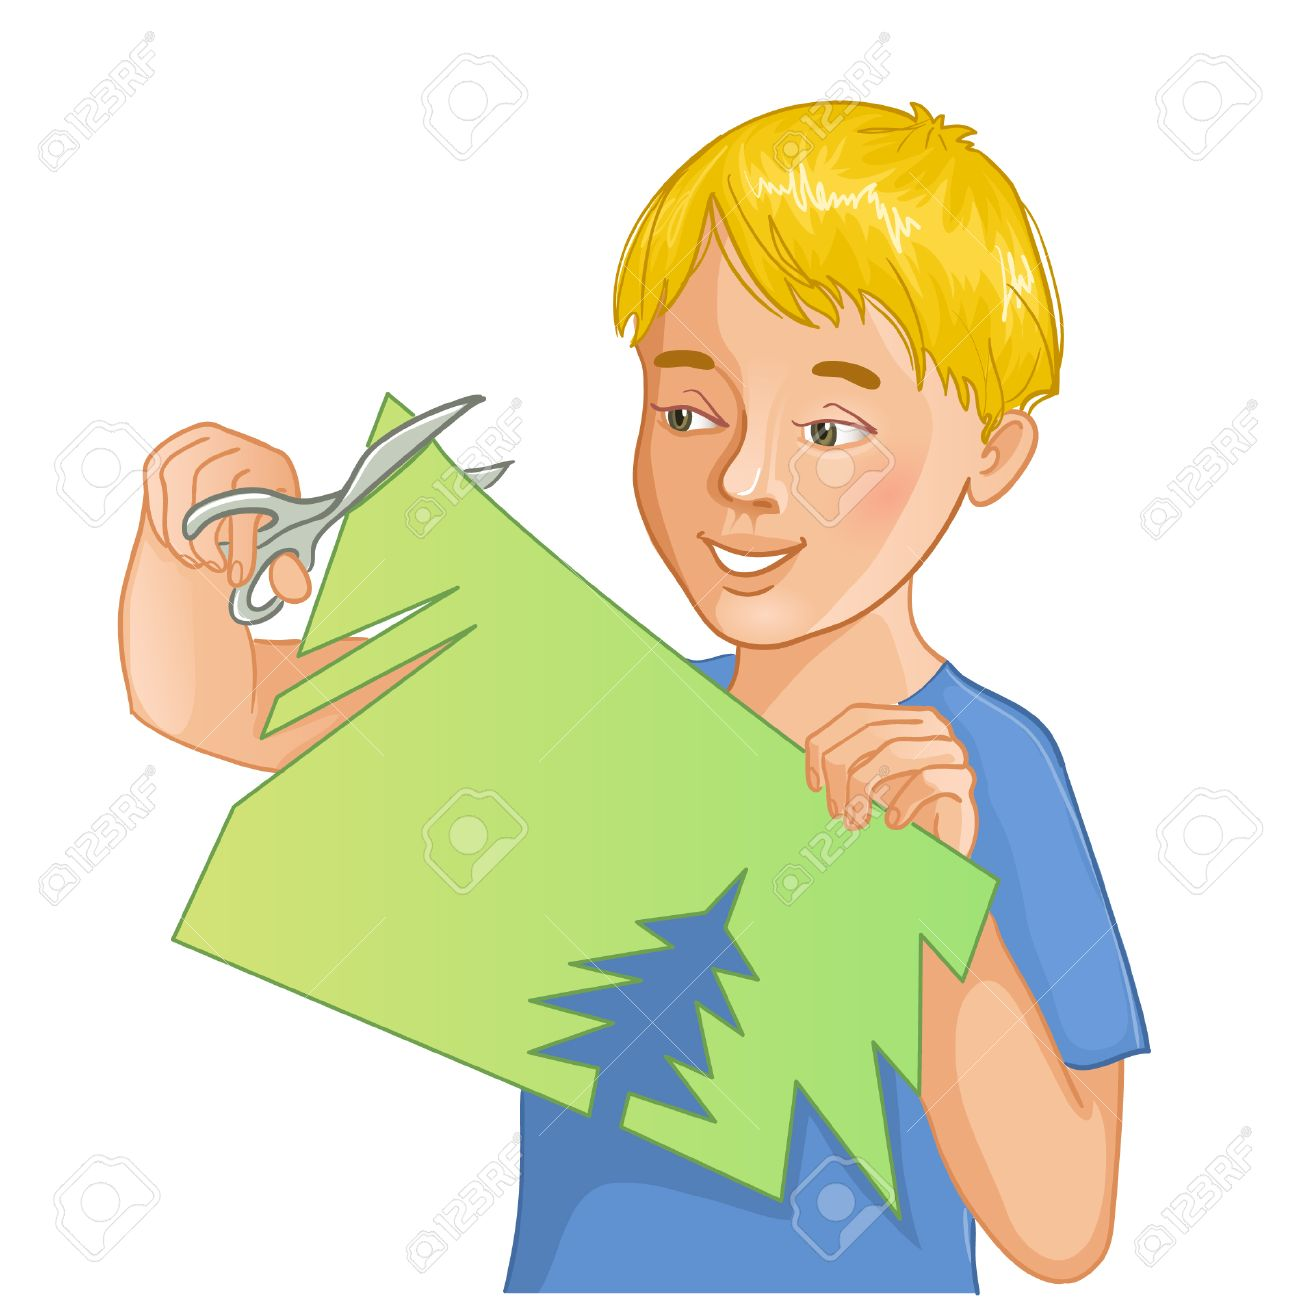 Boy is cutting color paper with scissors.